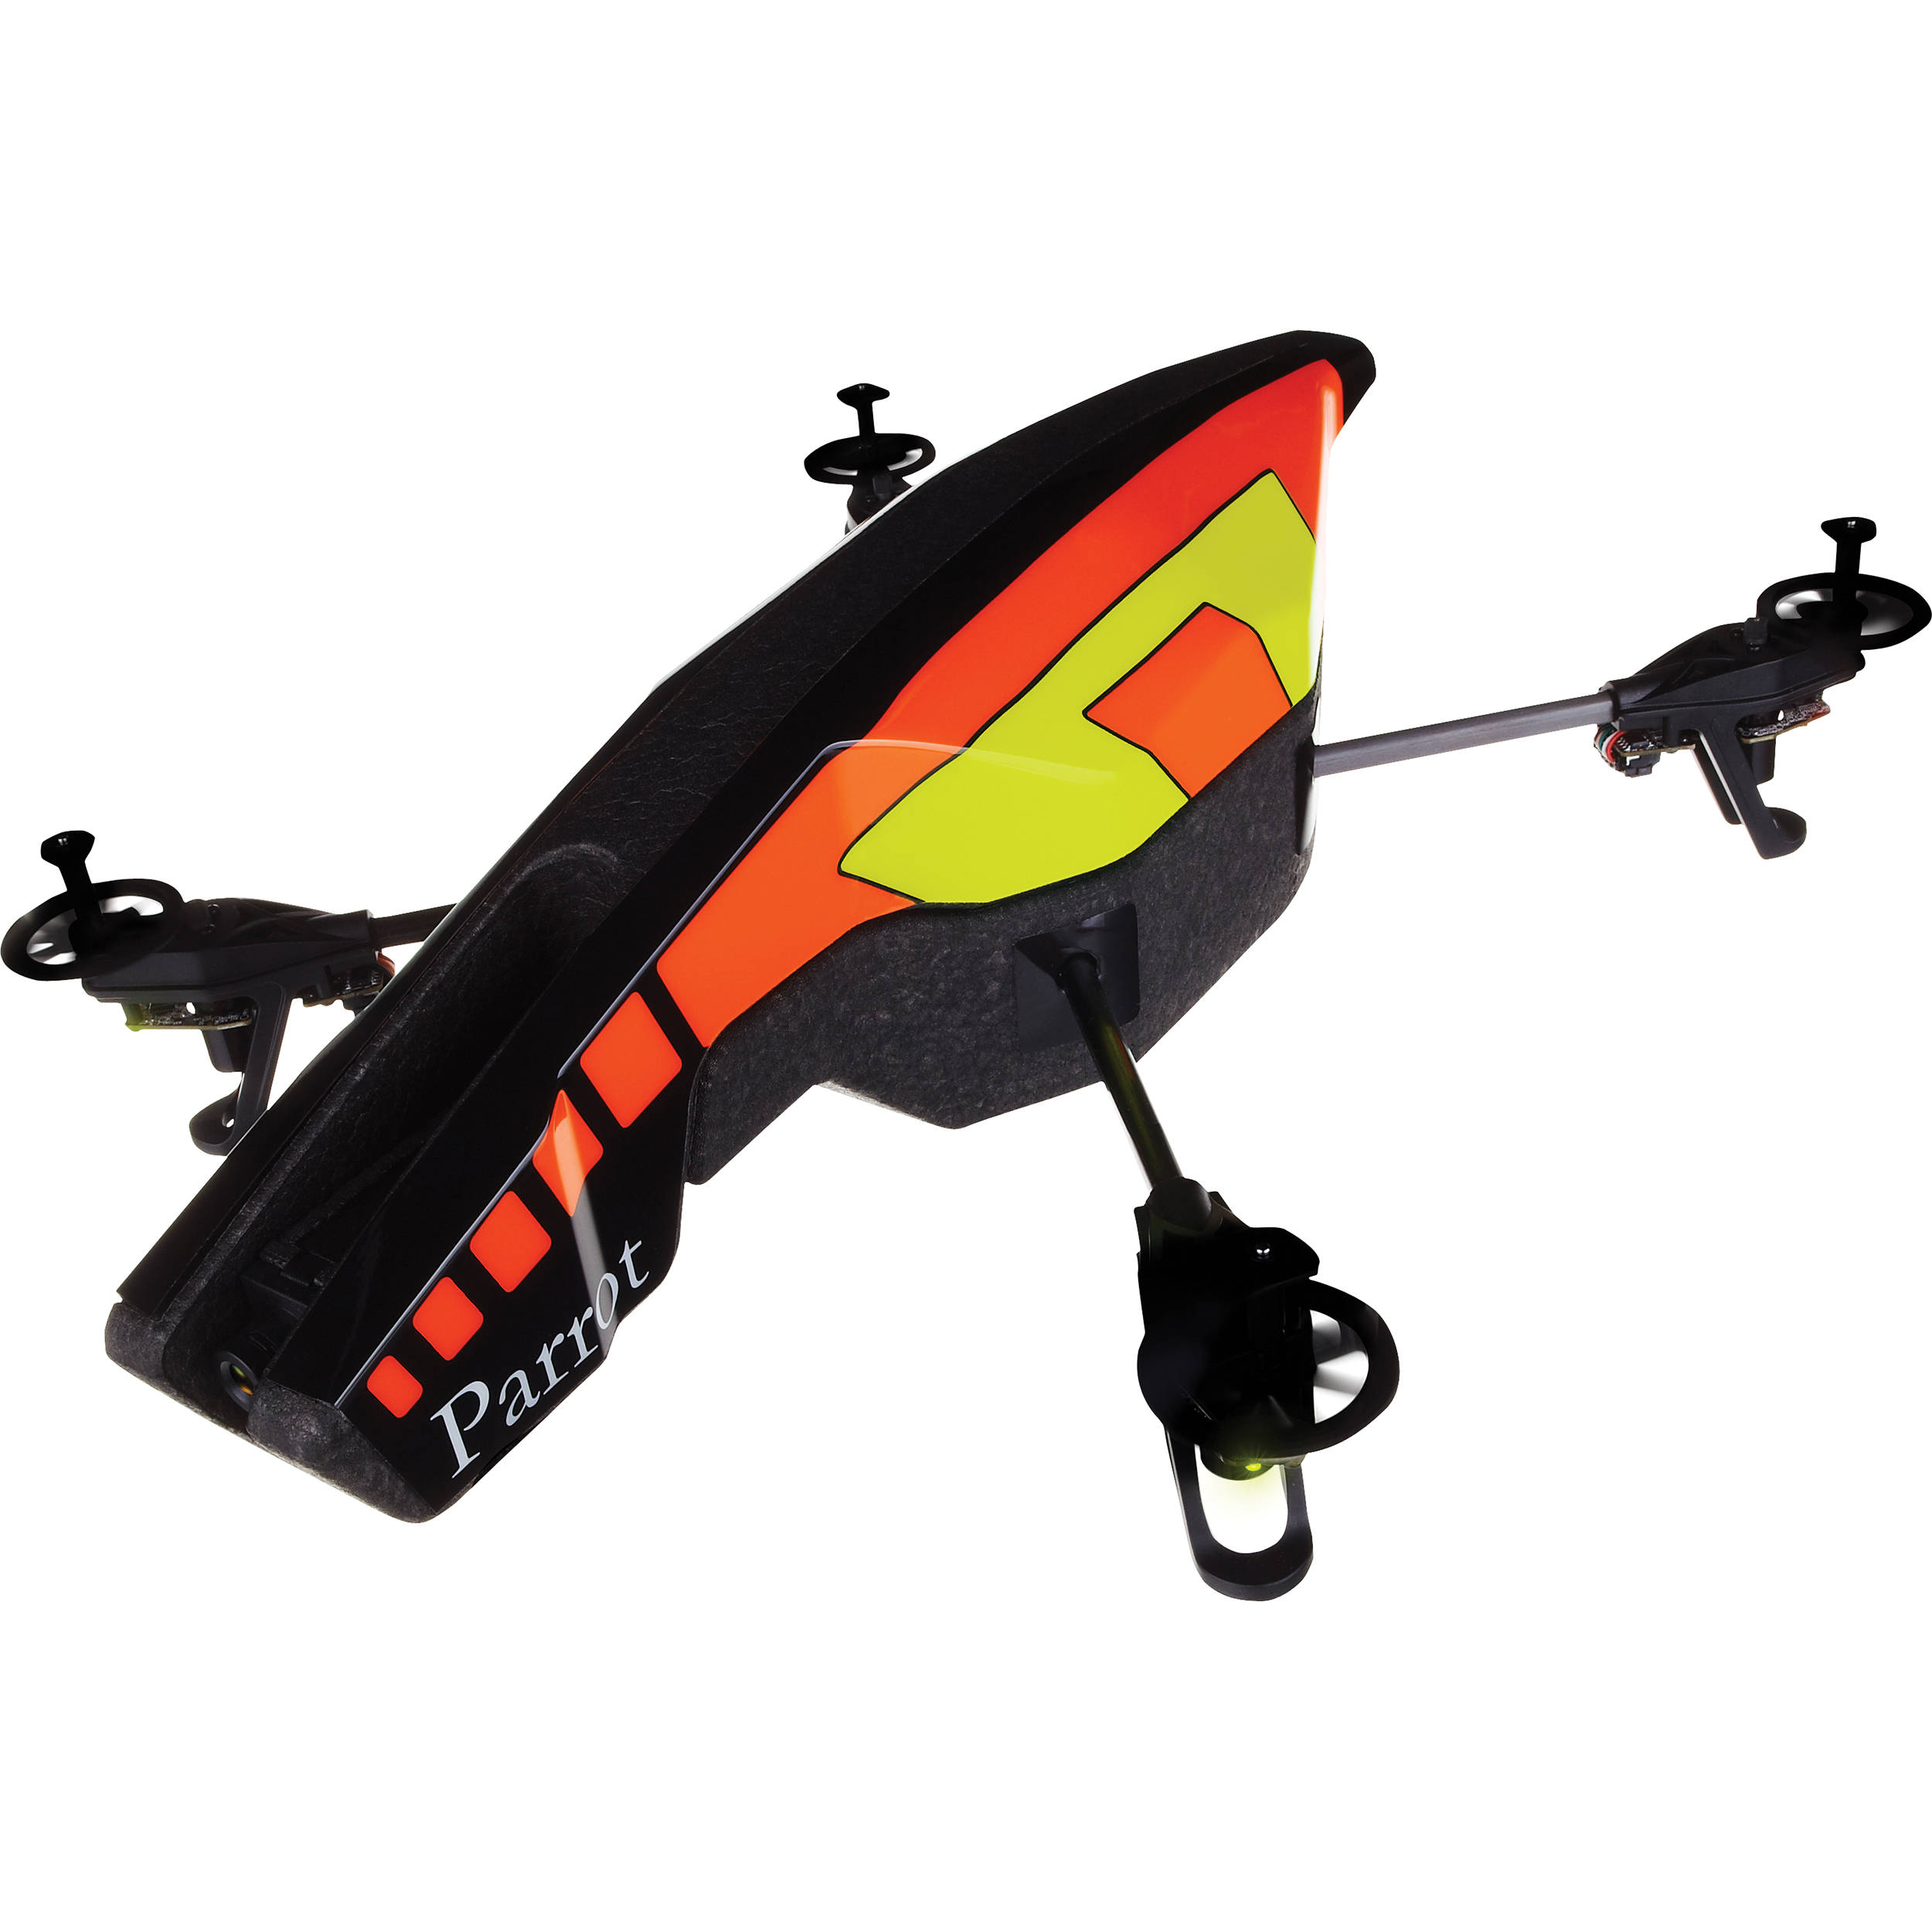 ar drone 2 0 absolute control with Papf721001 on  likewise Arrace 2 moreover Goods furthermore 9290 besides Parrot Flight Recorder Gps Drone e3520410011306.